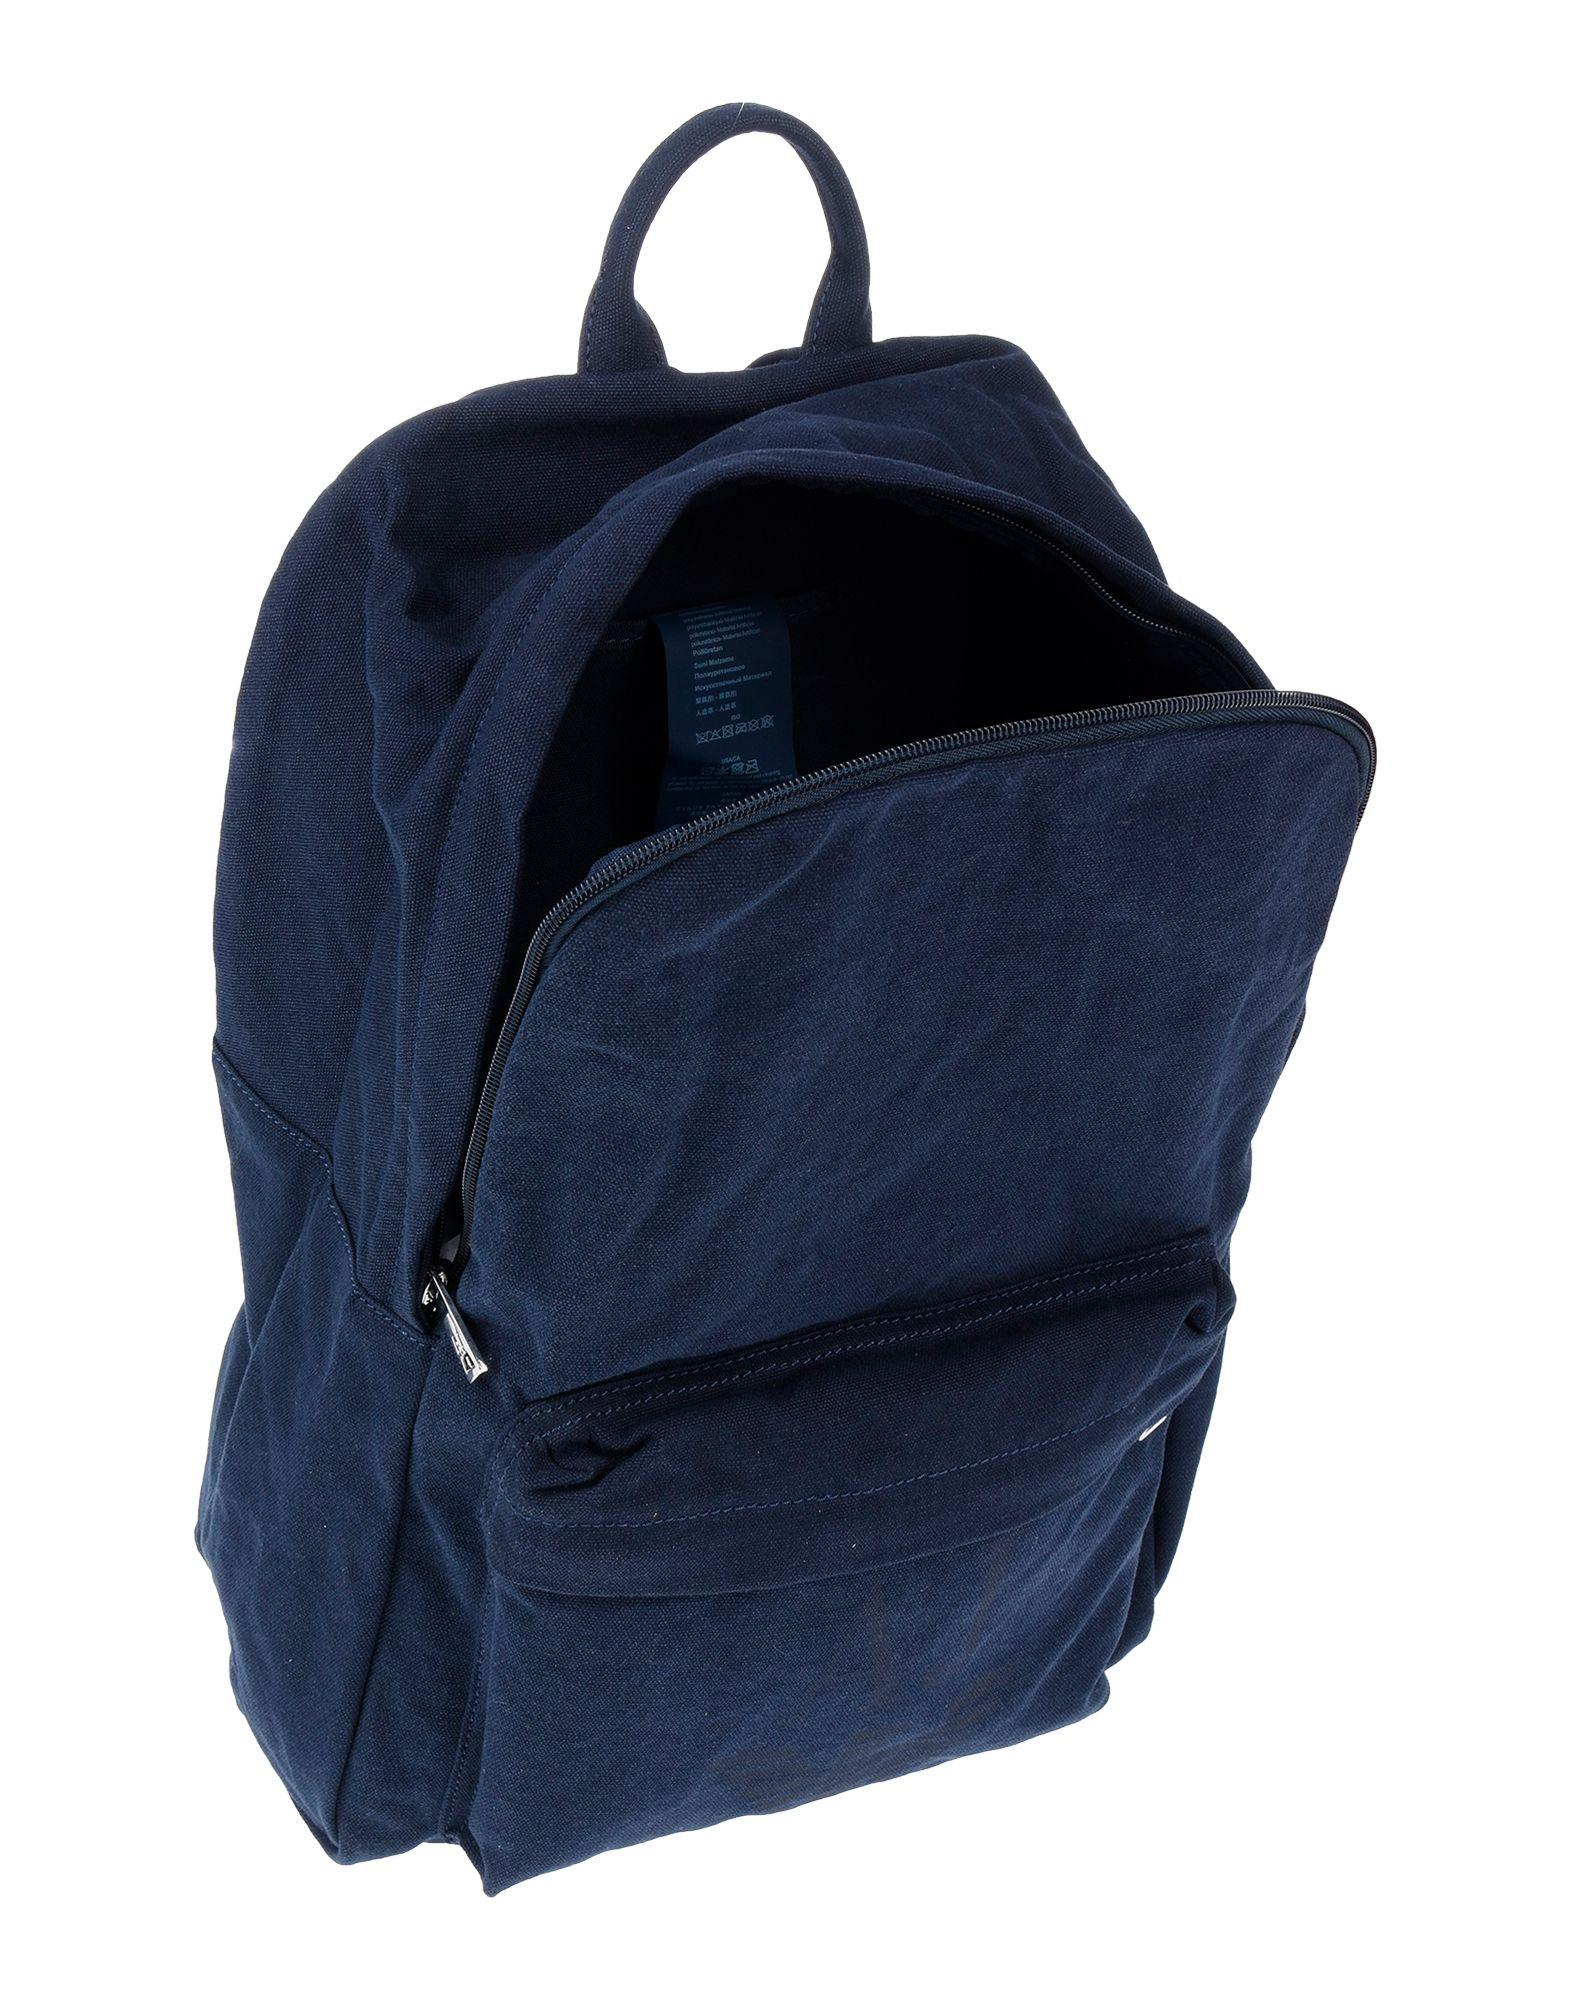 3cd825b15f4c Lyst - Armani Jeans Backpacks   Bum Bags in Blue for Men